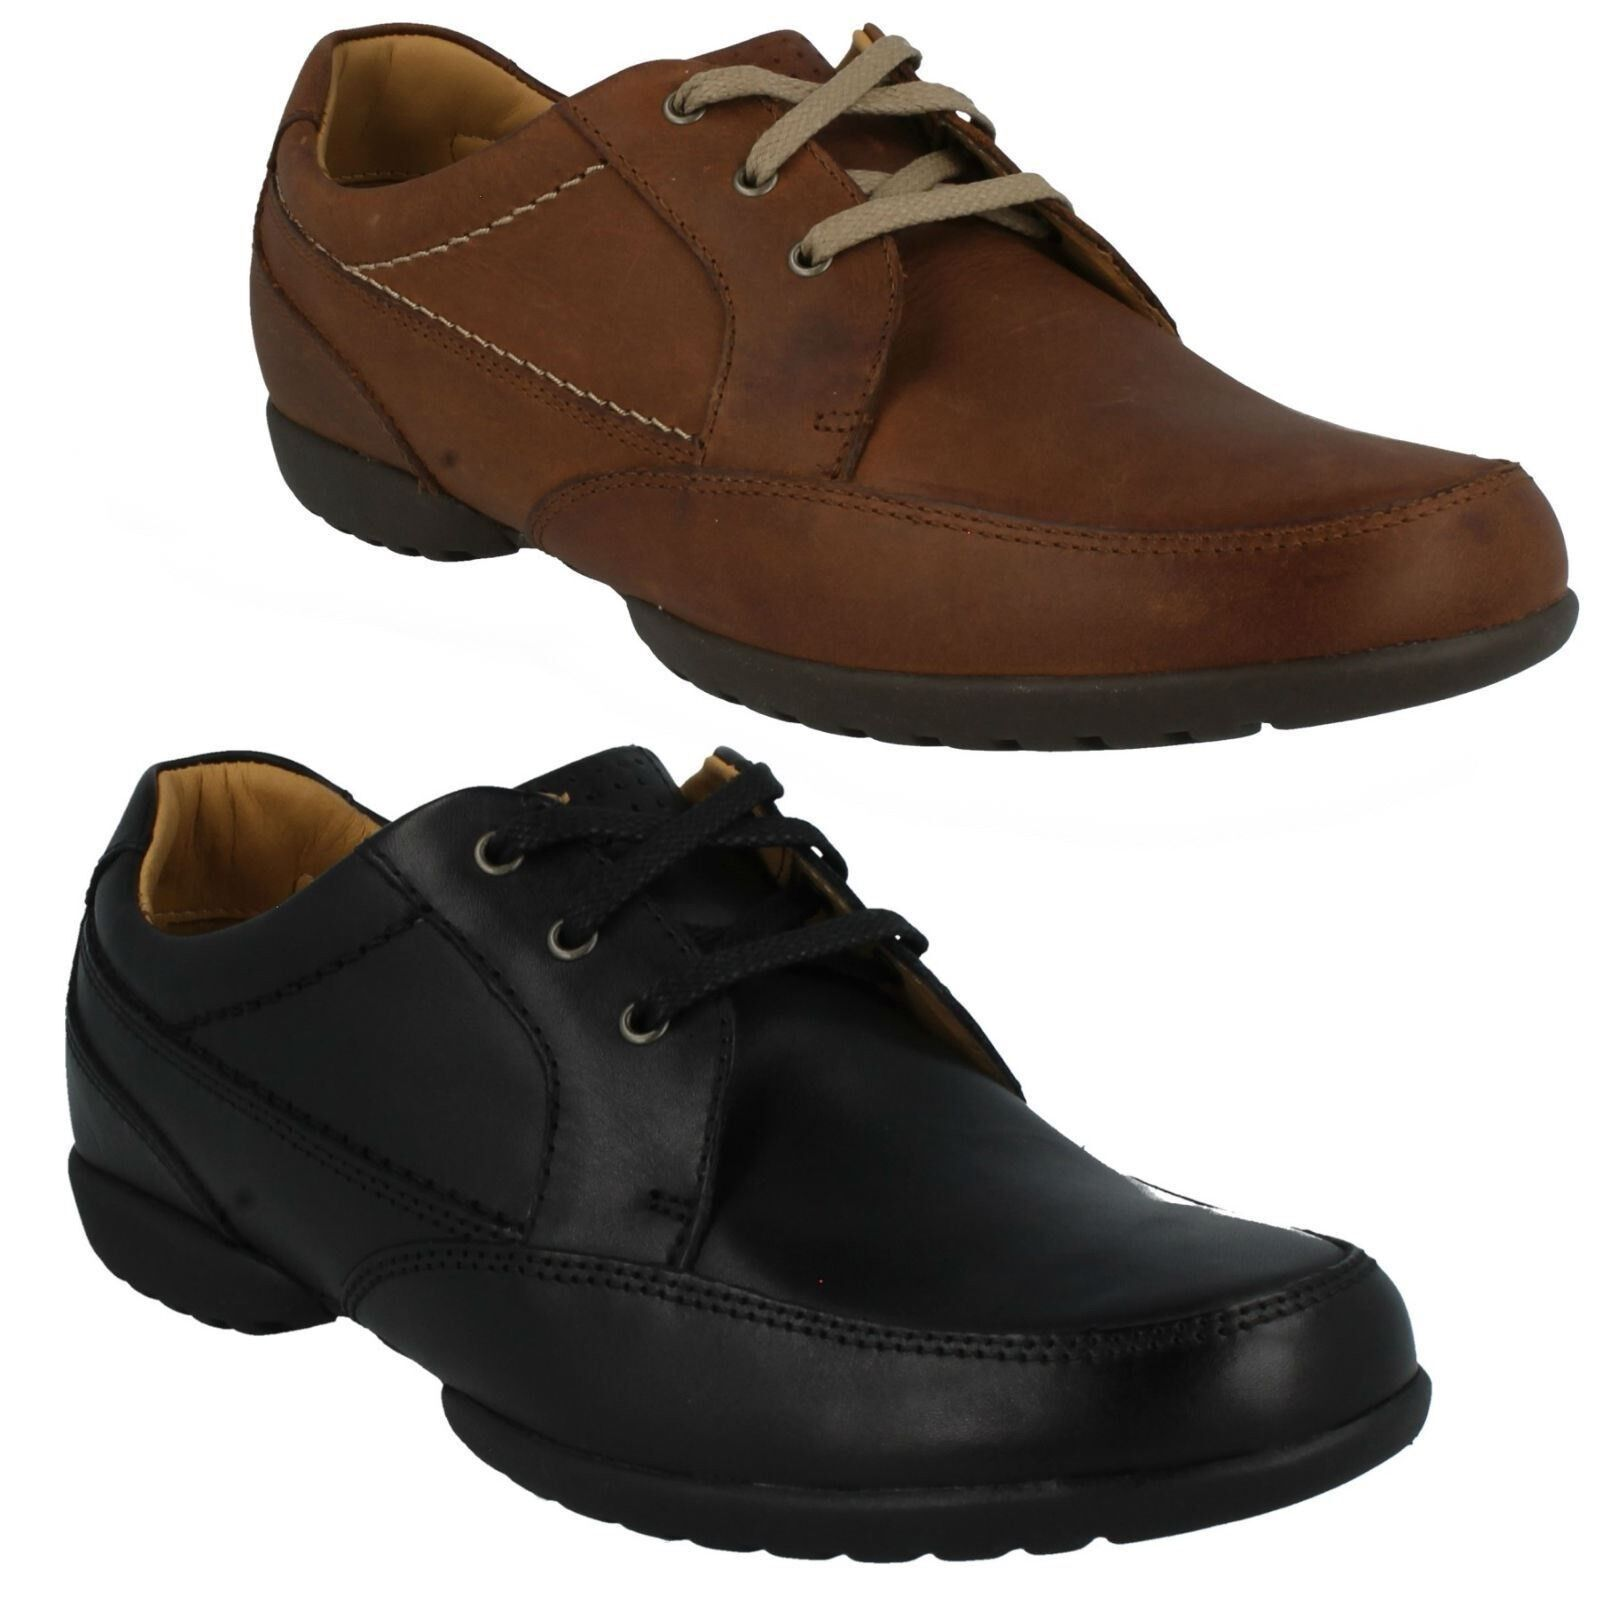 Herren CLARKS LEATHER LACE UP CASUAL SMART FORMAL WORK Schuhe SIZE RECLINE OUT a92889